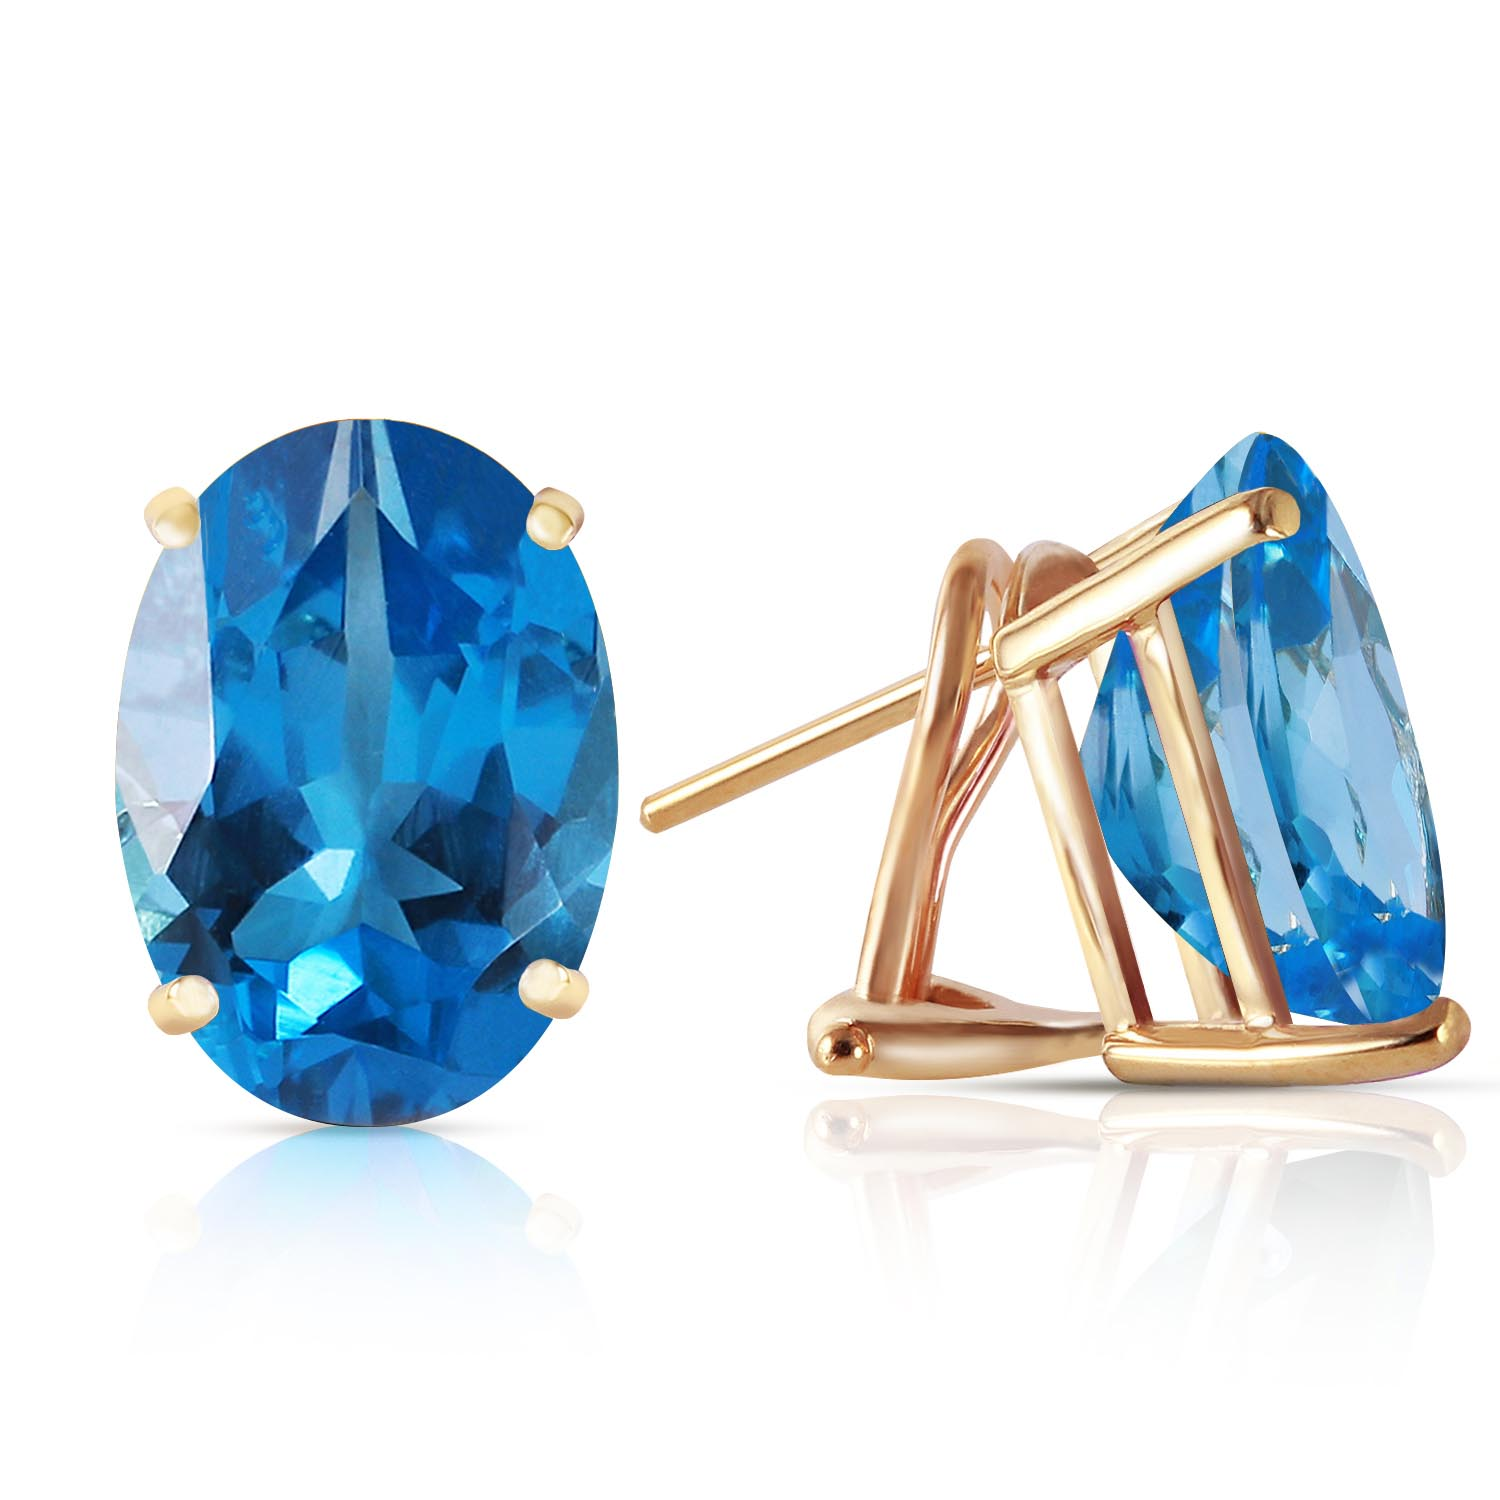 Blue Topaz Stud Earrings 16.0ctw in 9ct Gold